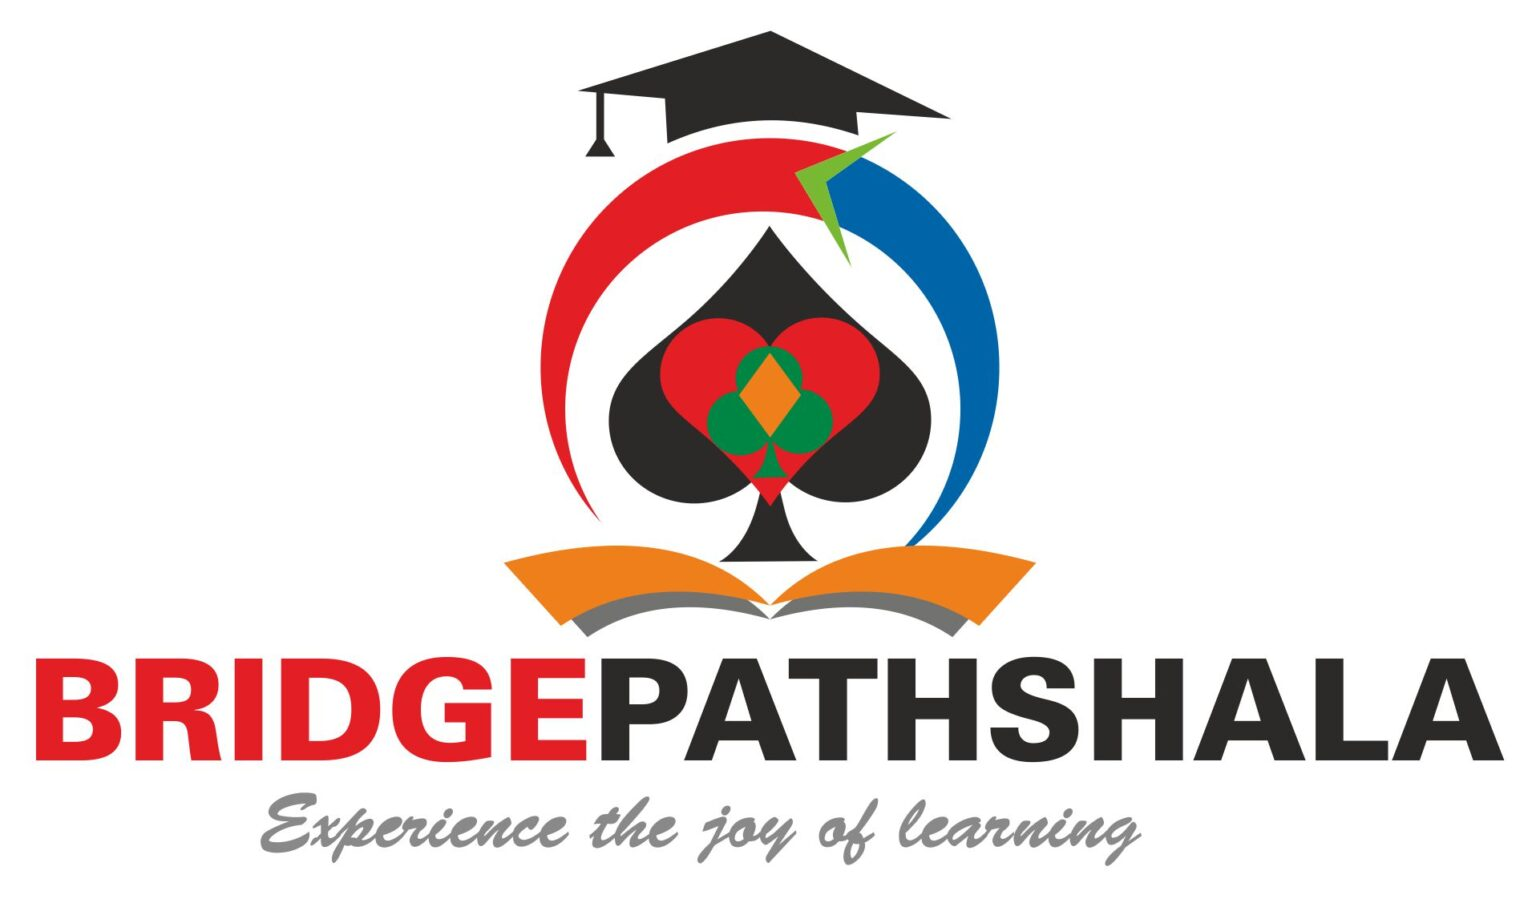 Bridge Pathshala (Centre for Bridge Excellence)